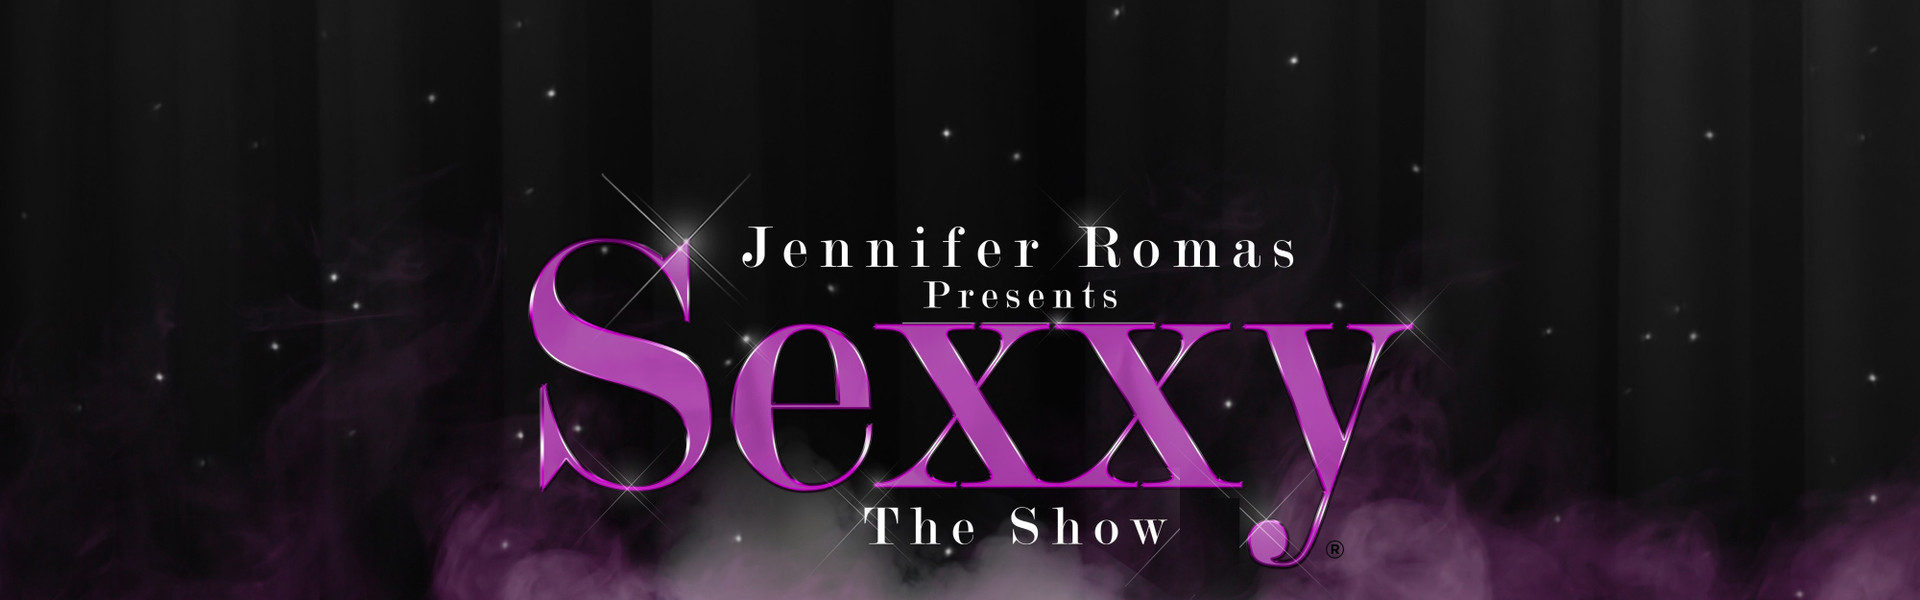 SEXXY, Las Vegas' sauciest topless revue, brings you through a journey of sensual, sexual, fun and enticing vignettes.